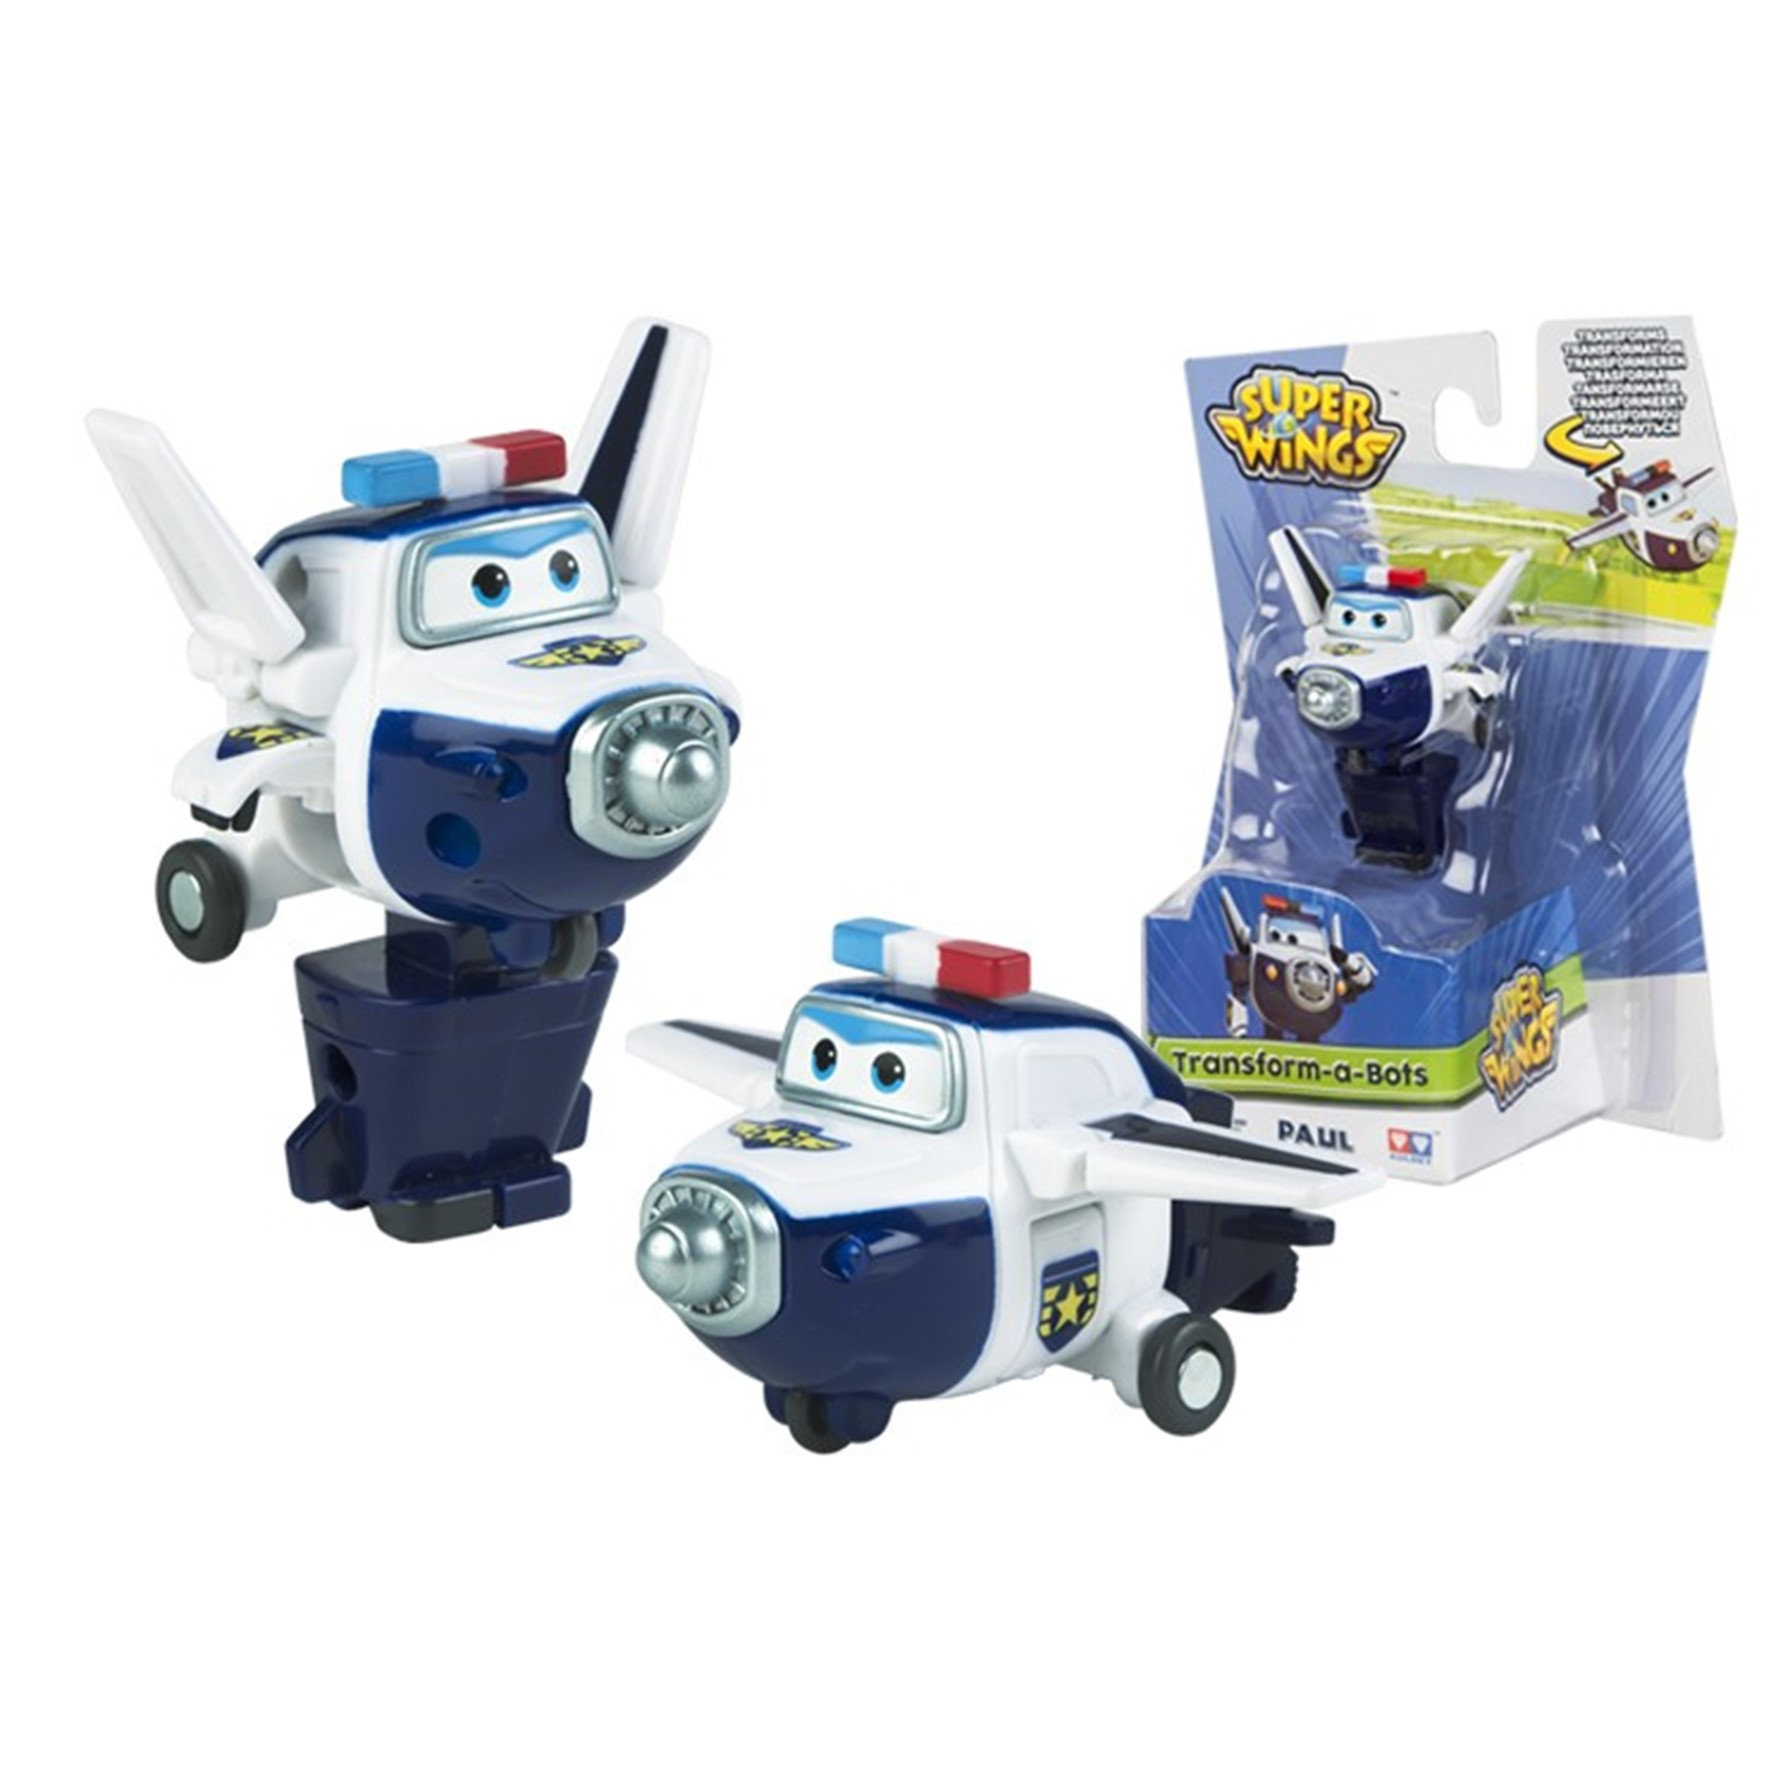 Super Wings Paul Transforma a Robot